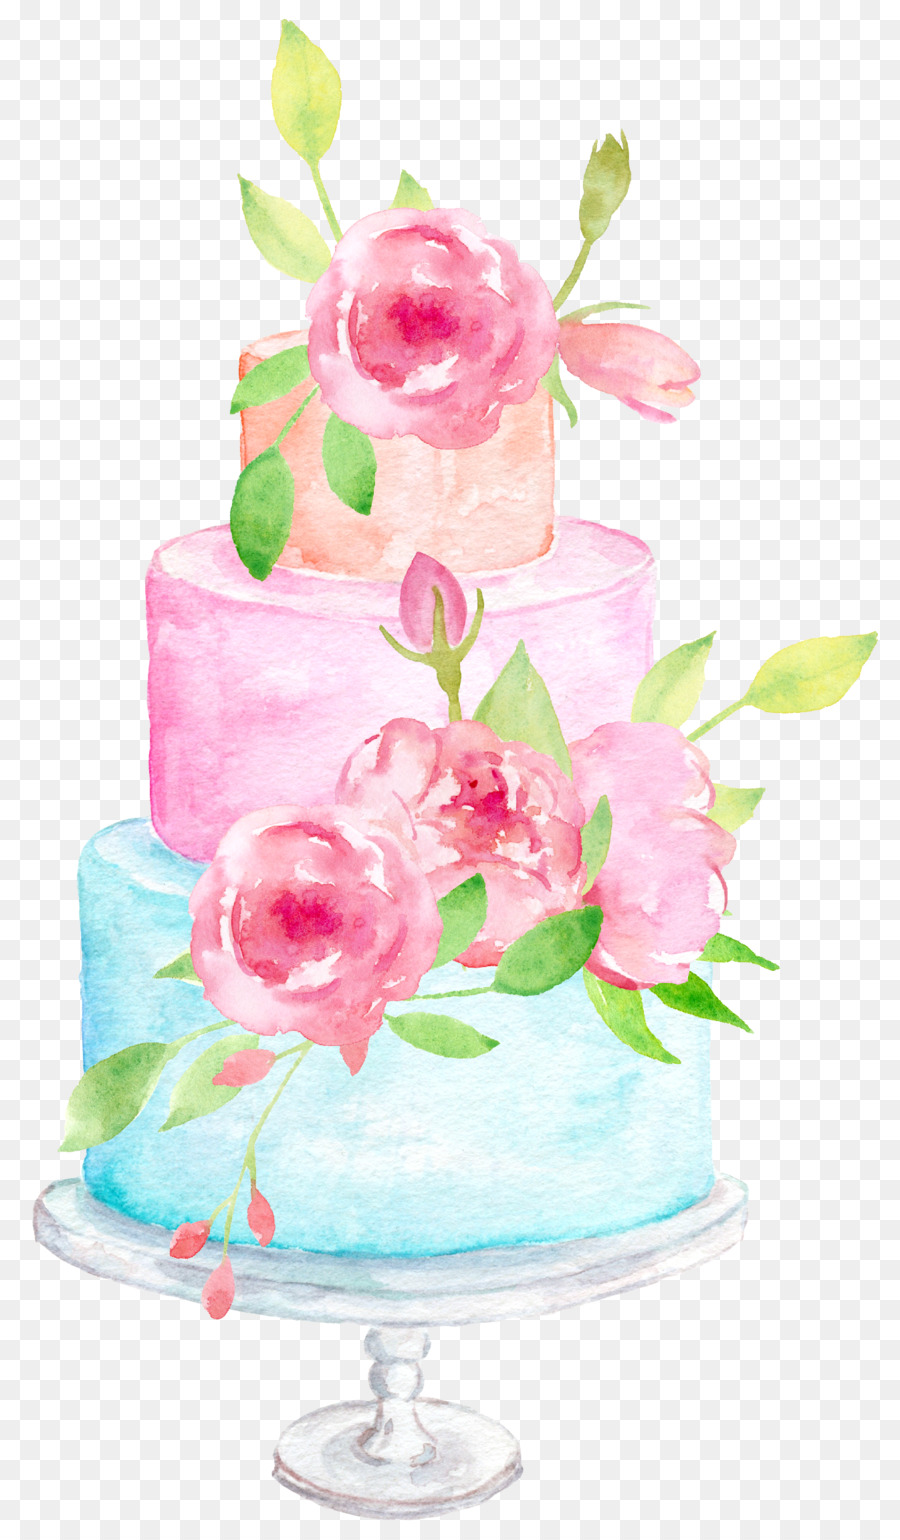 Wedding cake Wedding invitation Clip art - Flowers Gifts png ...